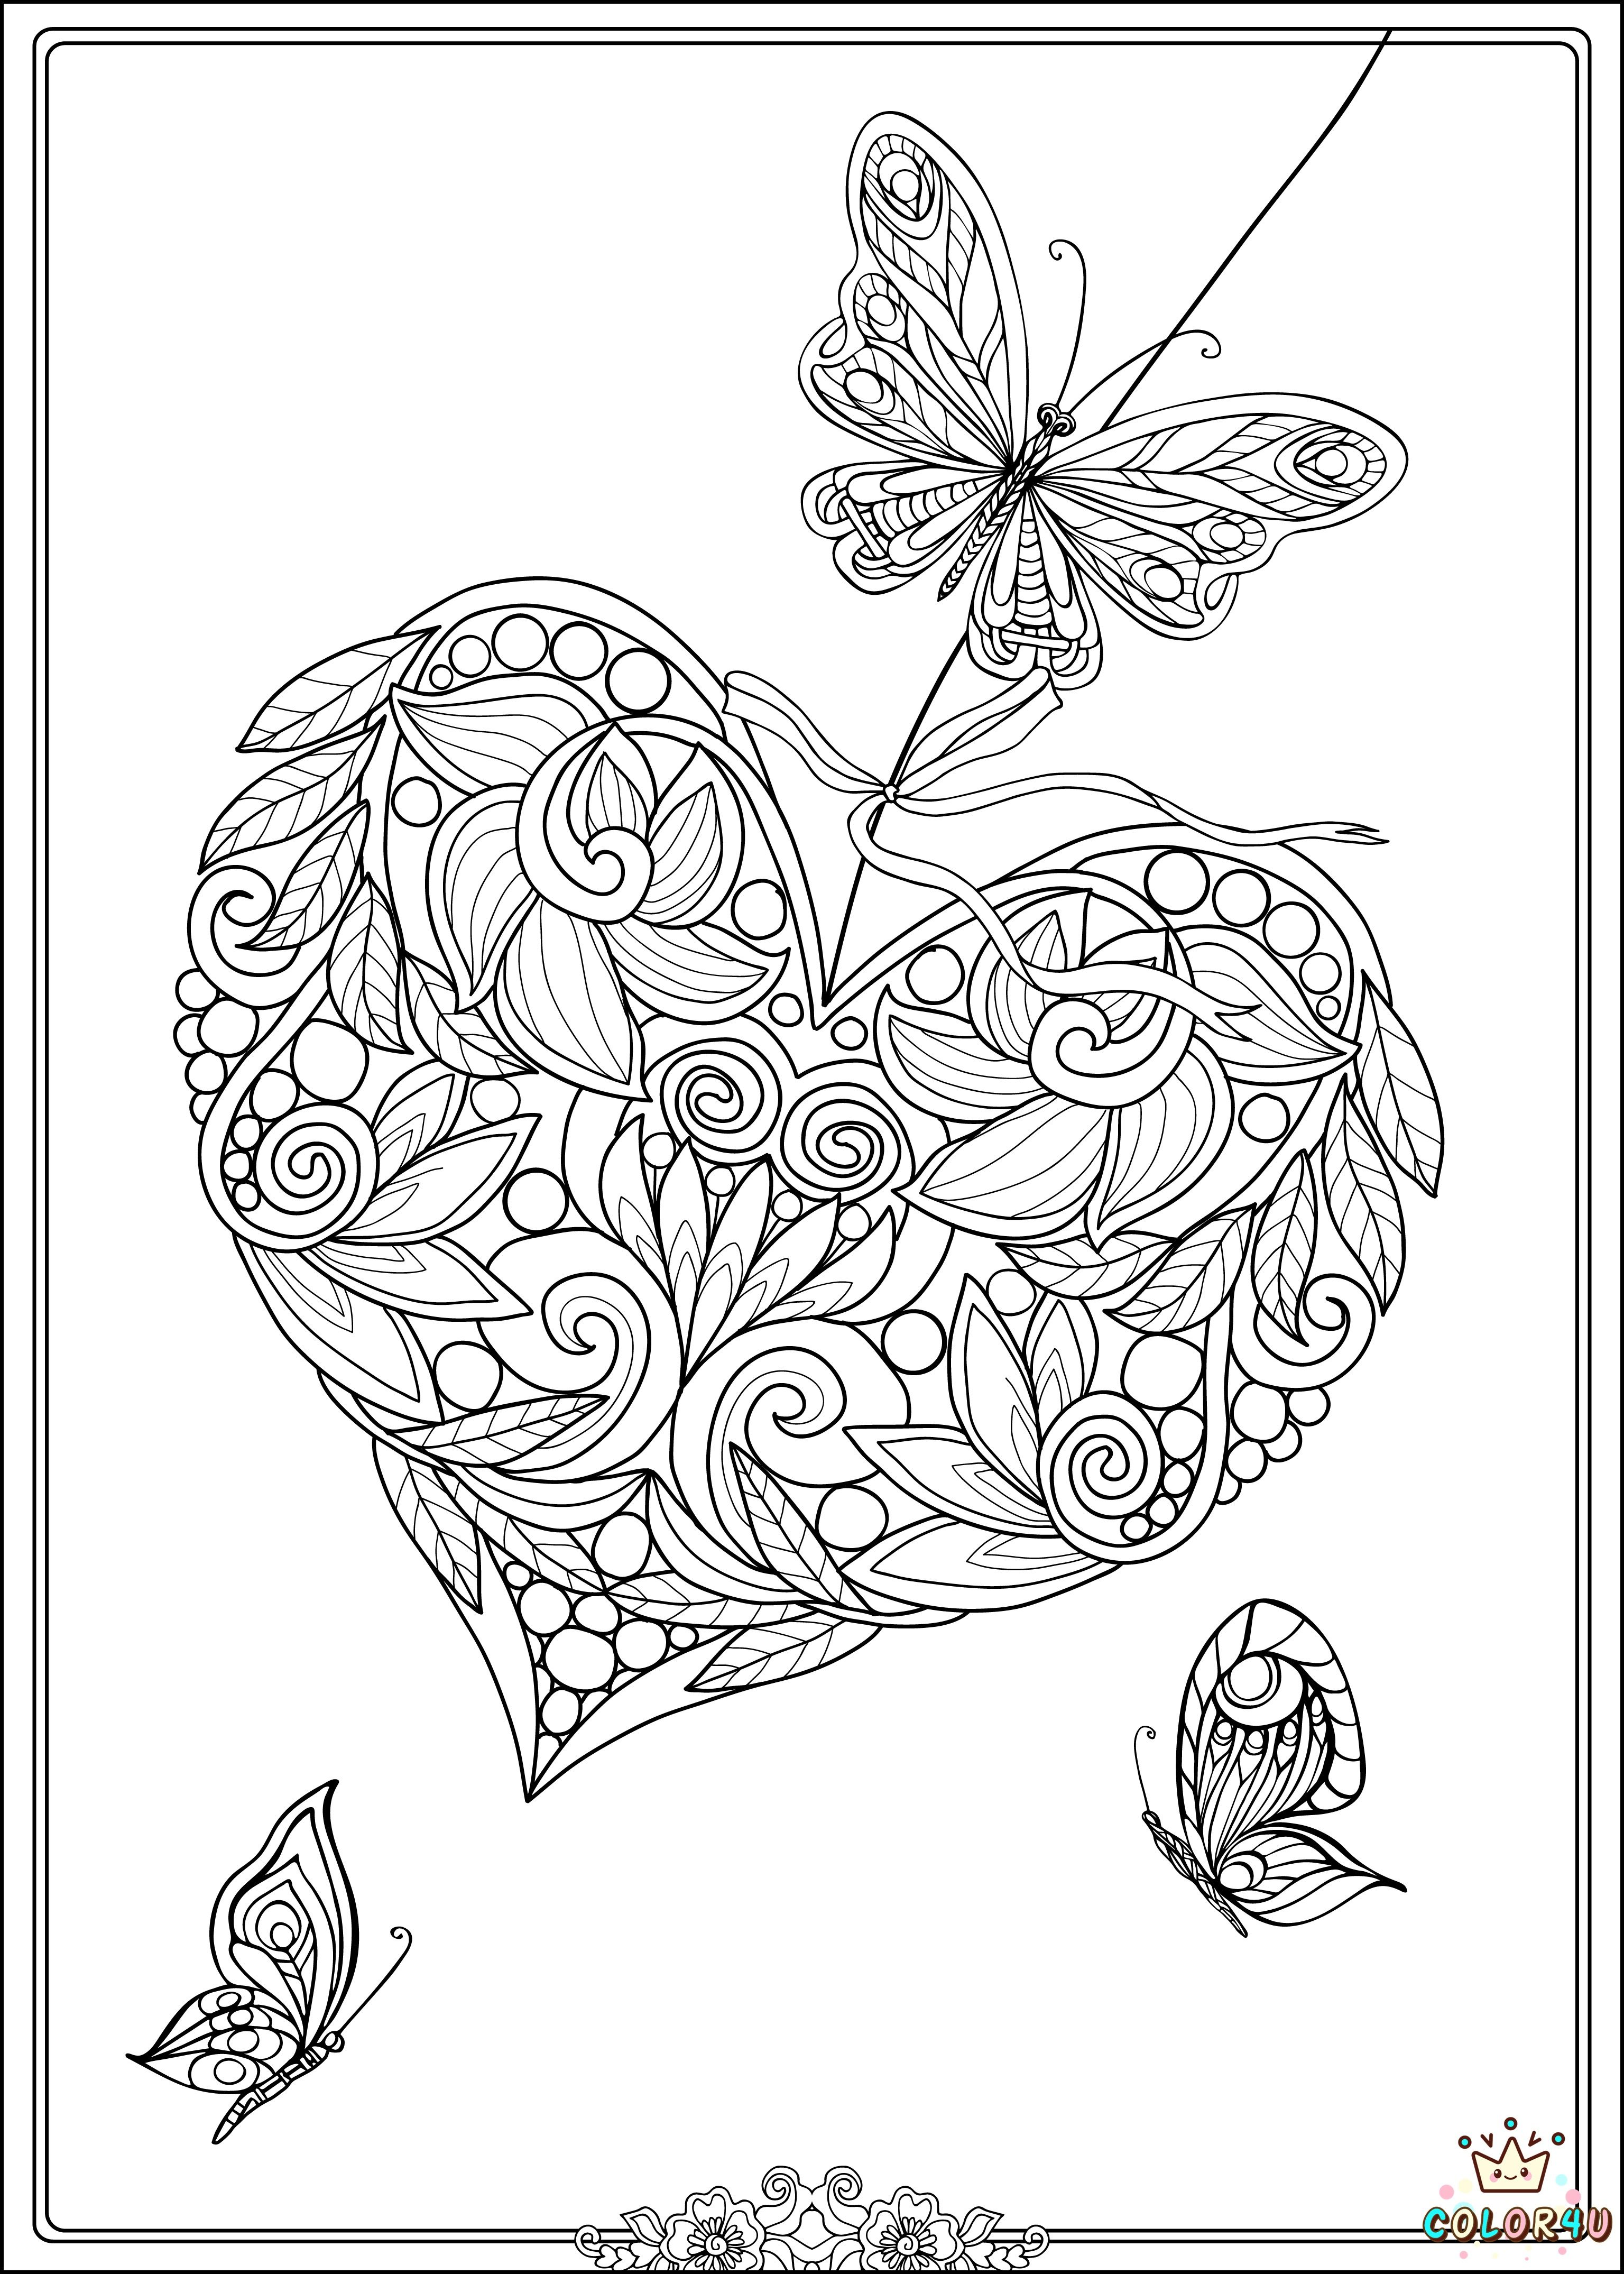 Heart butterfly coloring page sheet | Heart coloring pages ... | free online coloring pages for adults animals